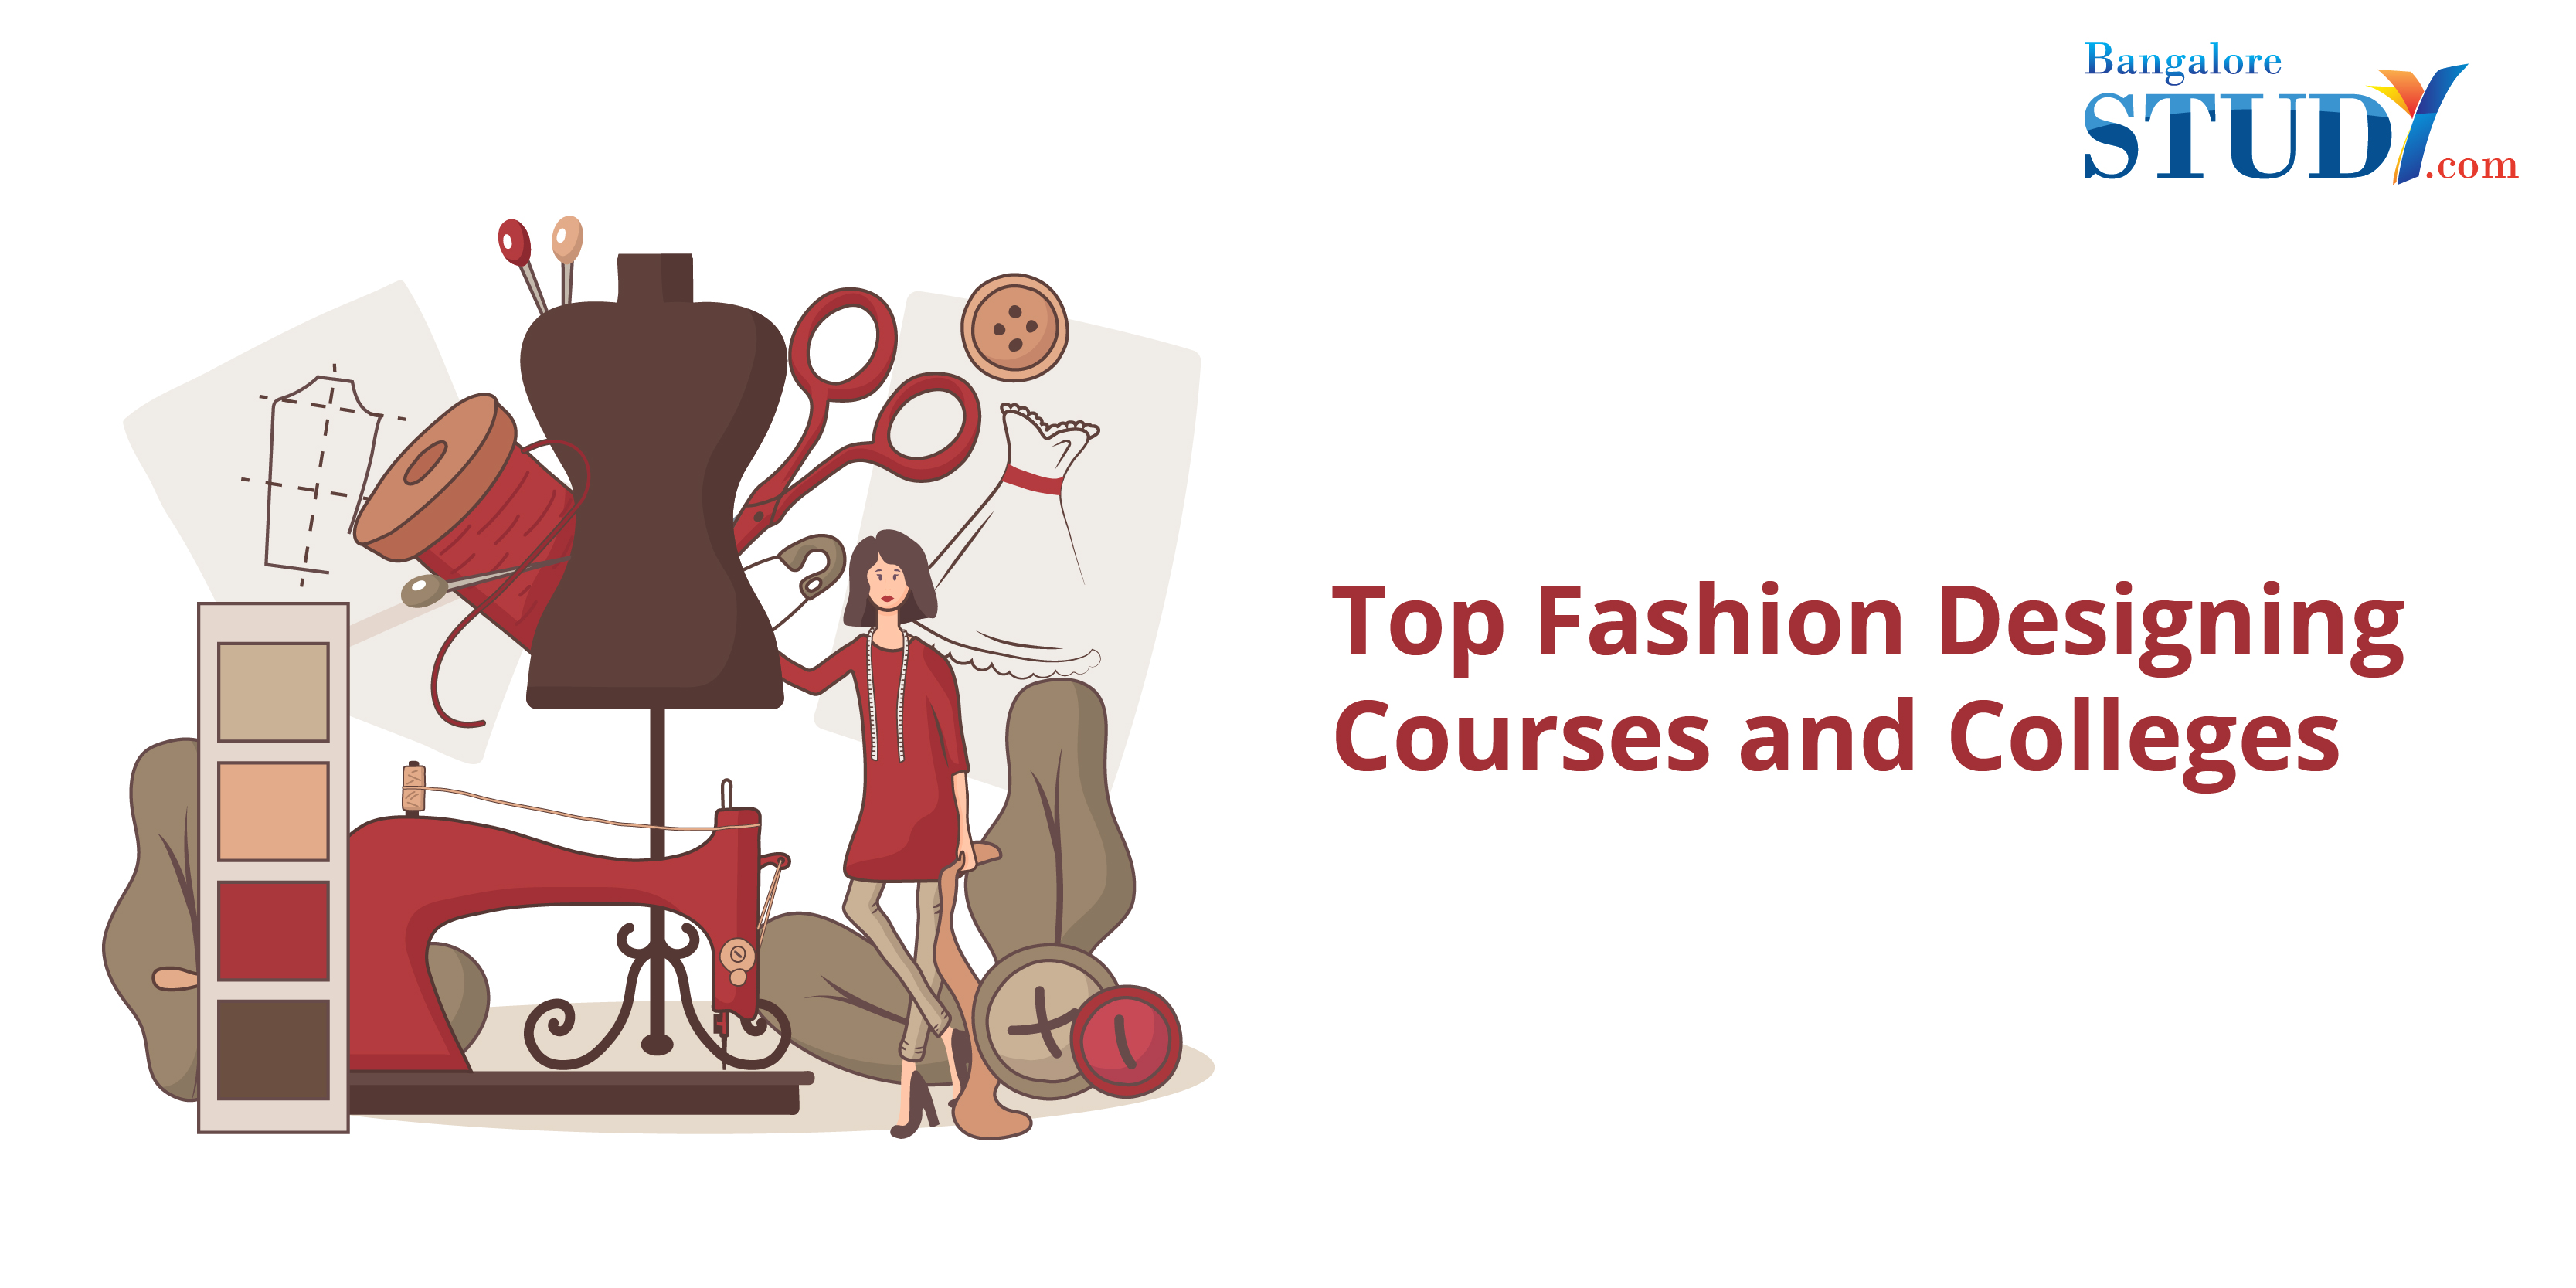 Top Fashion Designing Courses and Colleges